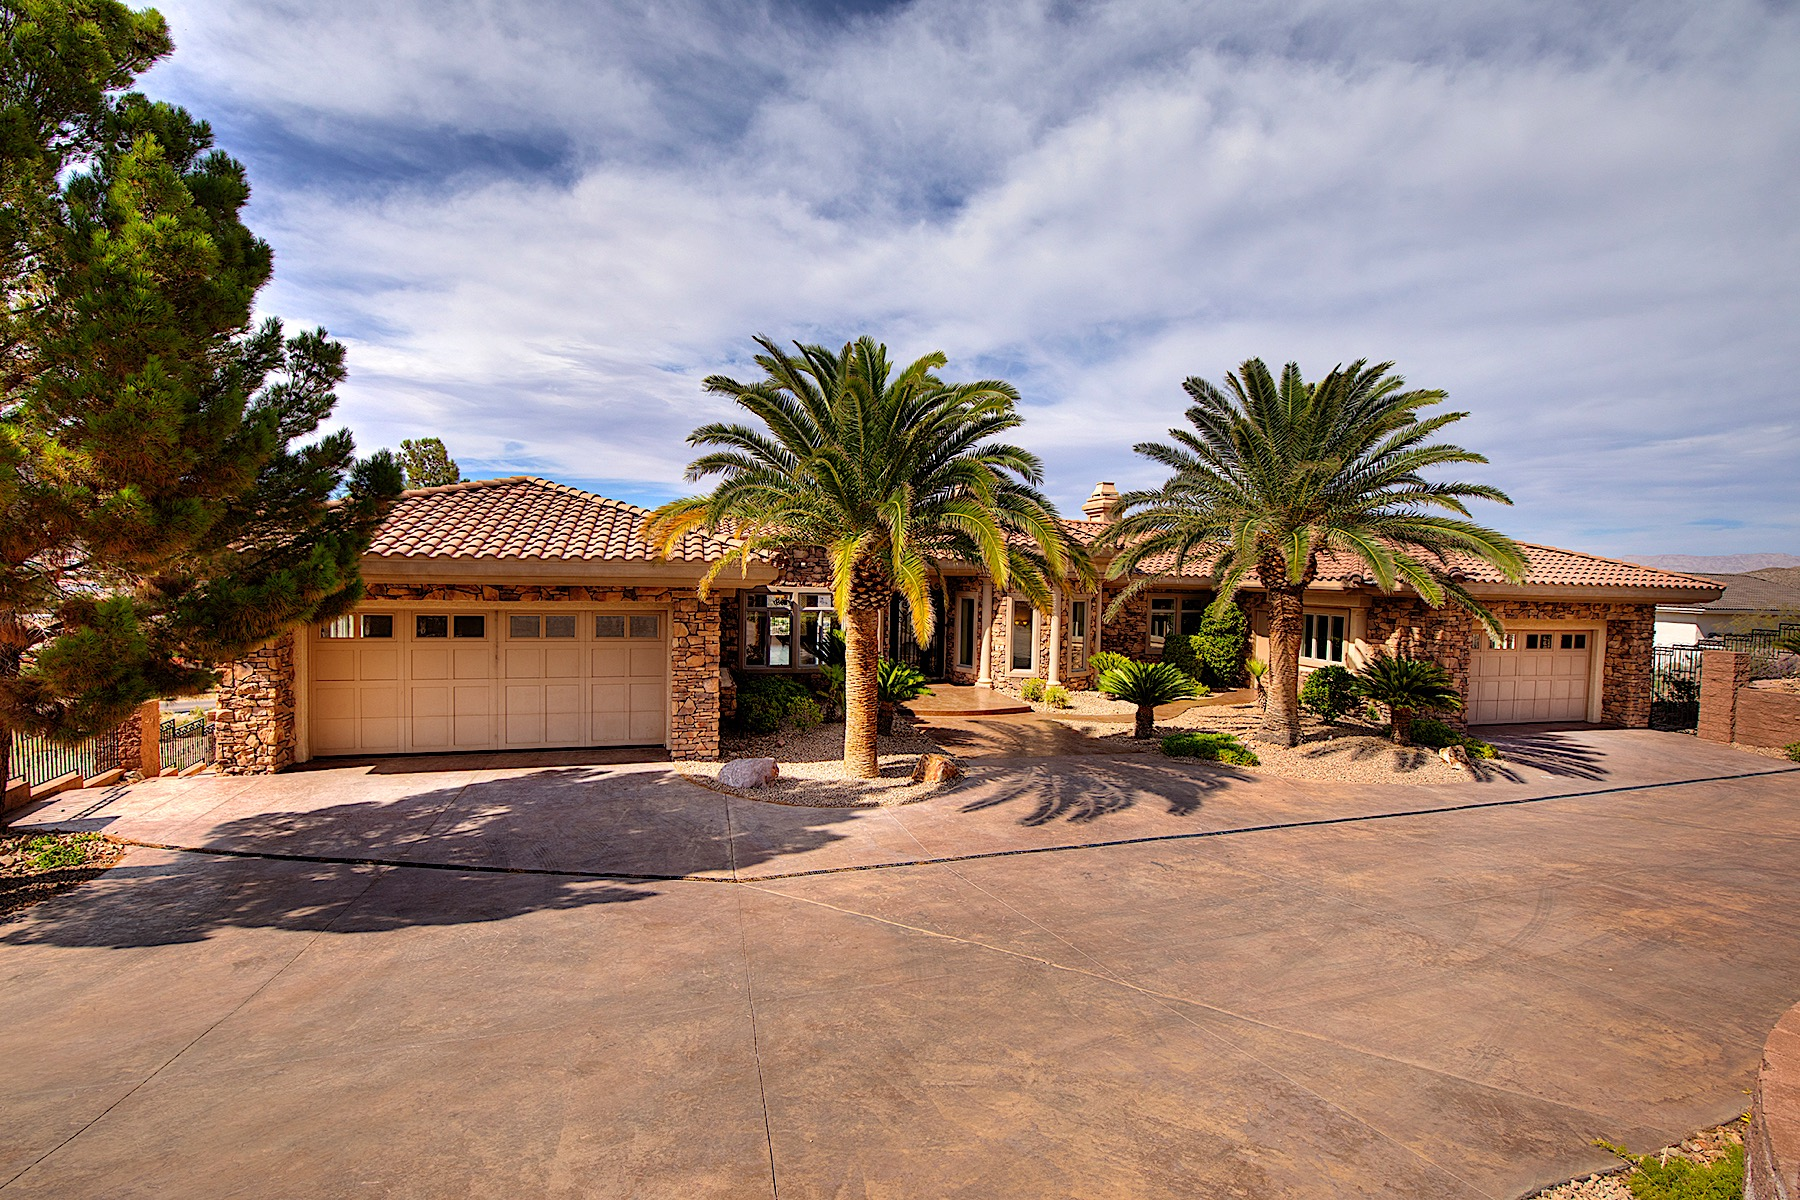 Single Family Homes for Sale at 1316 Alpine Drive, Boulder City, NV 89005 1316 Alpine Drive Boulder City, Nevada 89005 United States